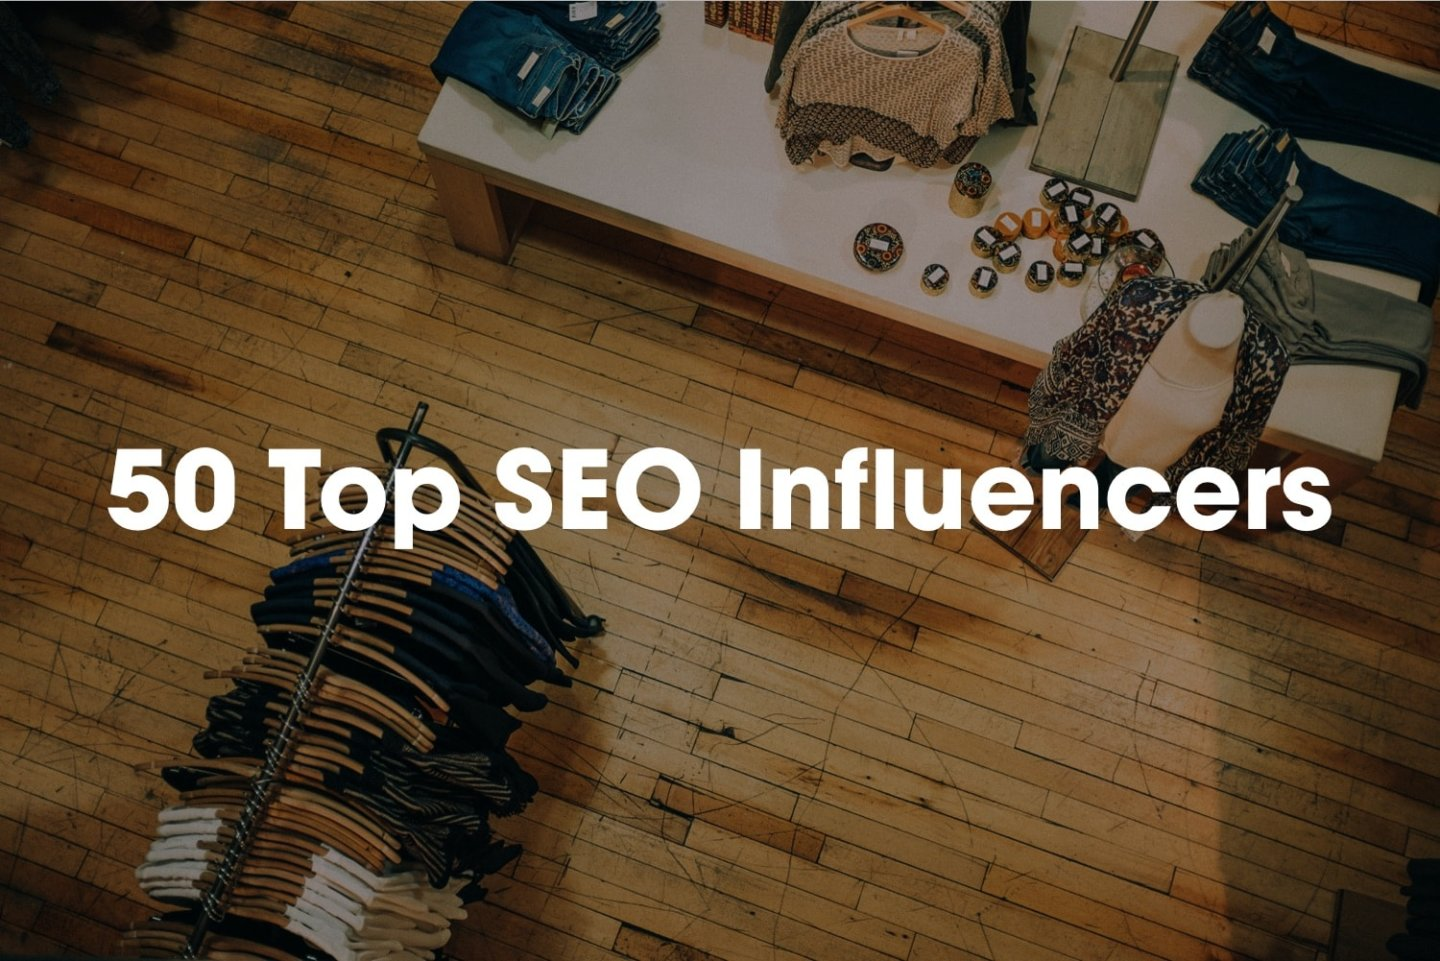 50 Top SEO Influencers - Small Business Tools